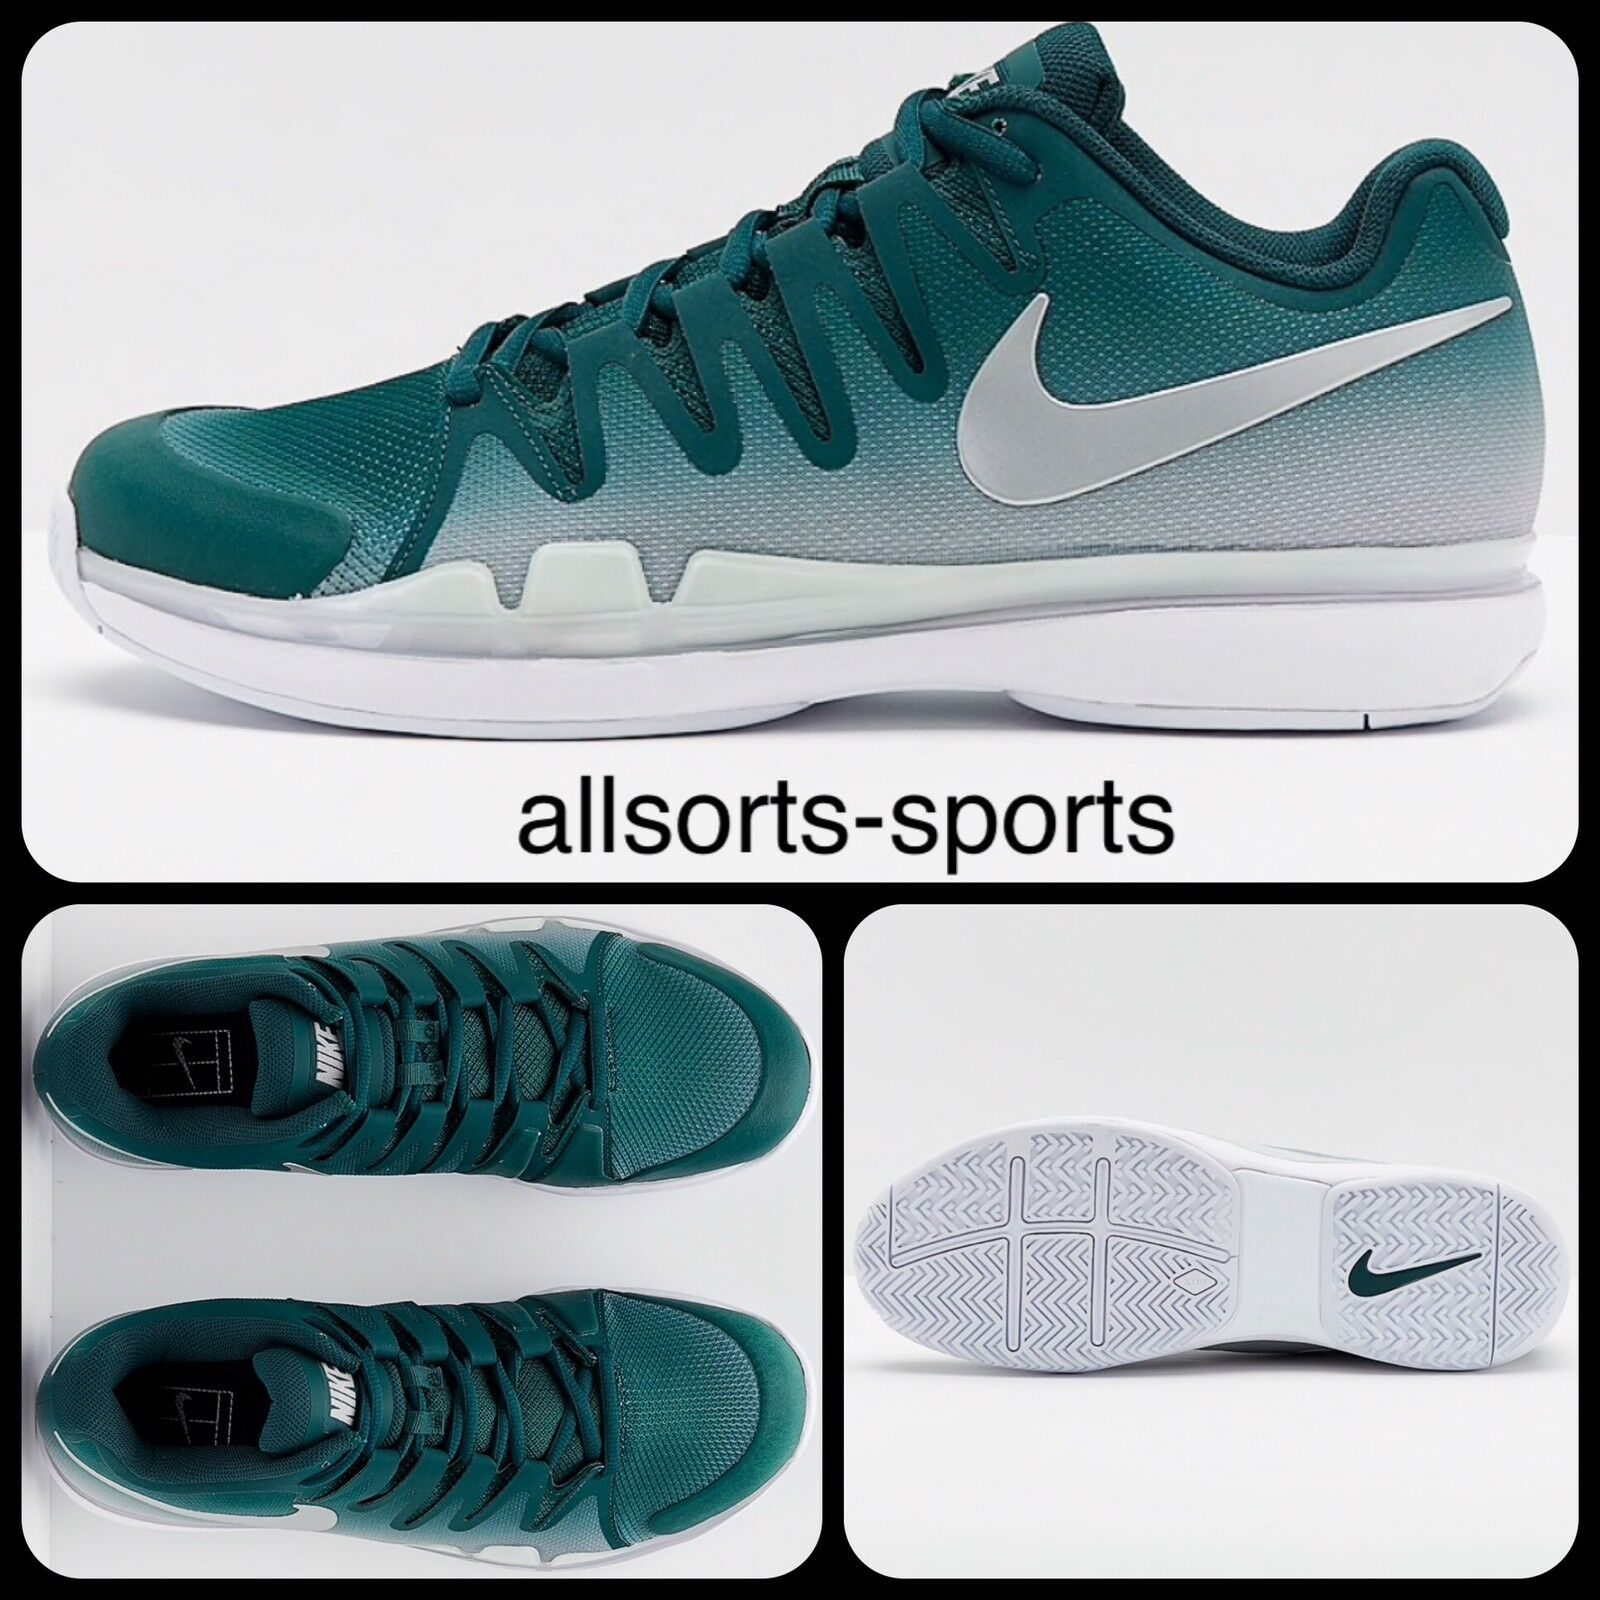 V76 Nike Zoom Vapor 9.5 Tour 631458-300 Federer Tennis shoes